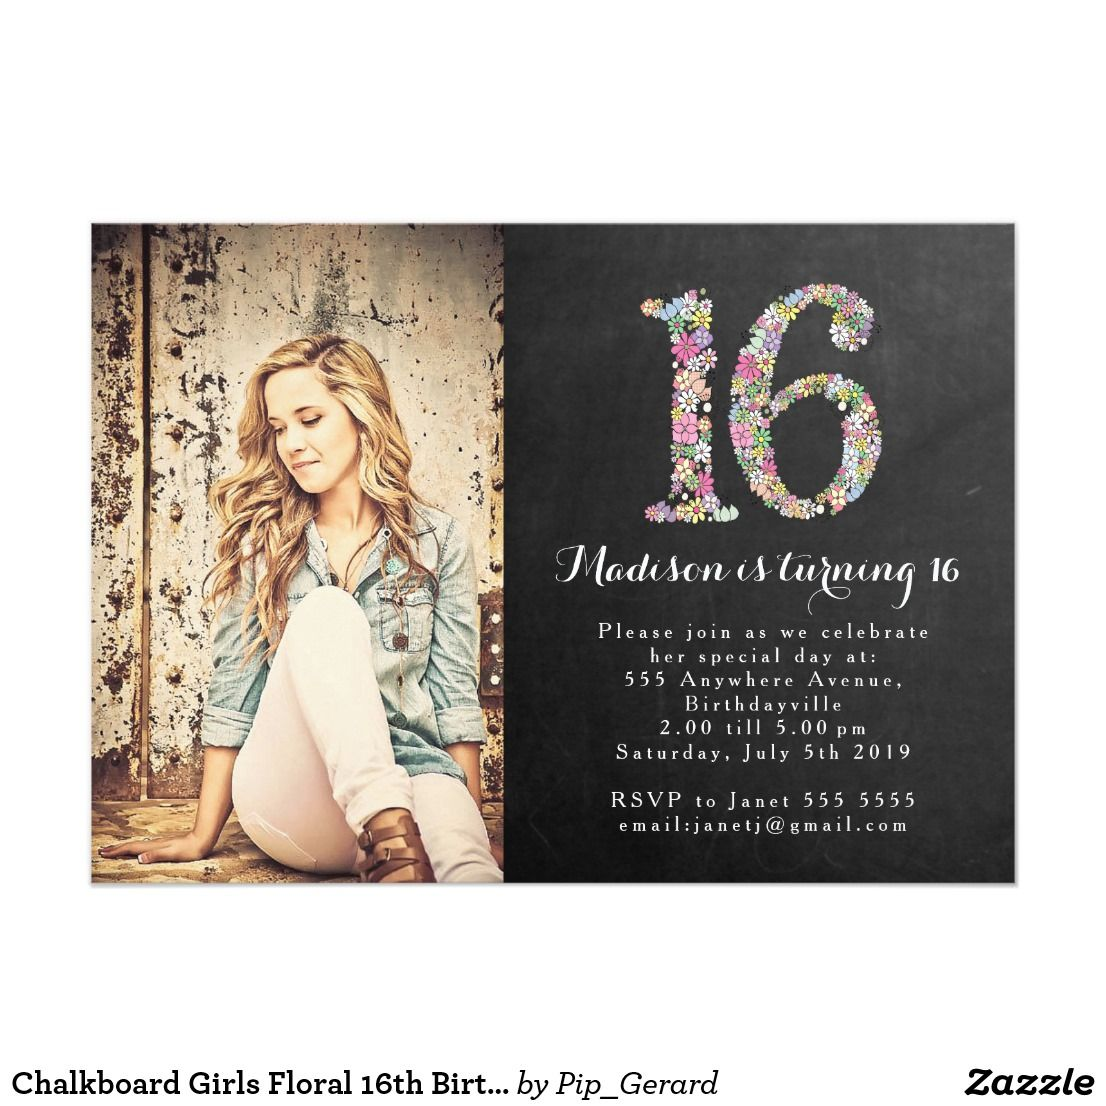 Chalkboard Girls Floral 16th Birthday Party Invite | Zazzle.com #sweet16birthdayparty